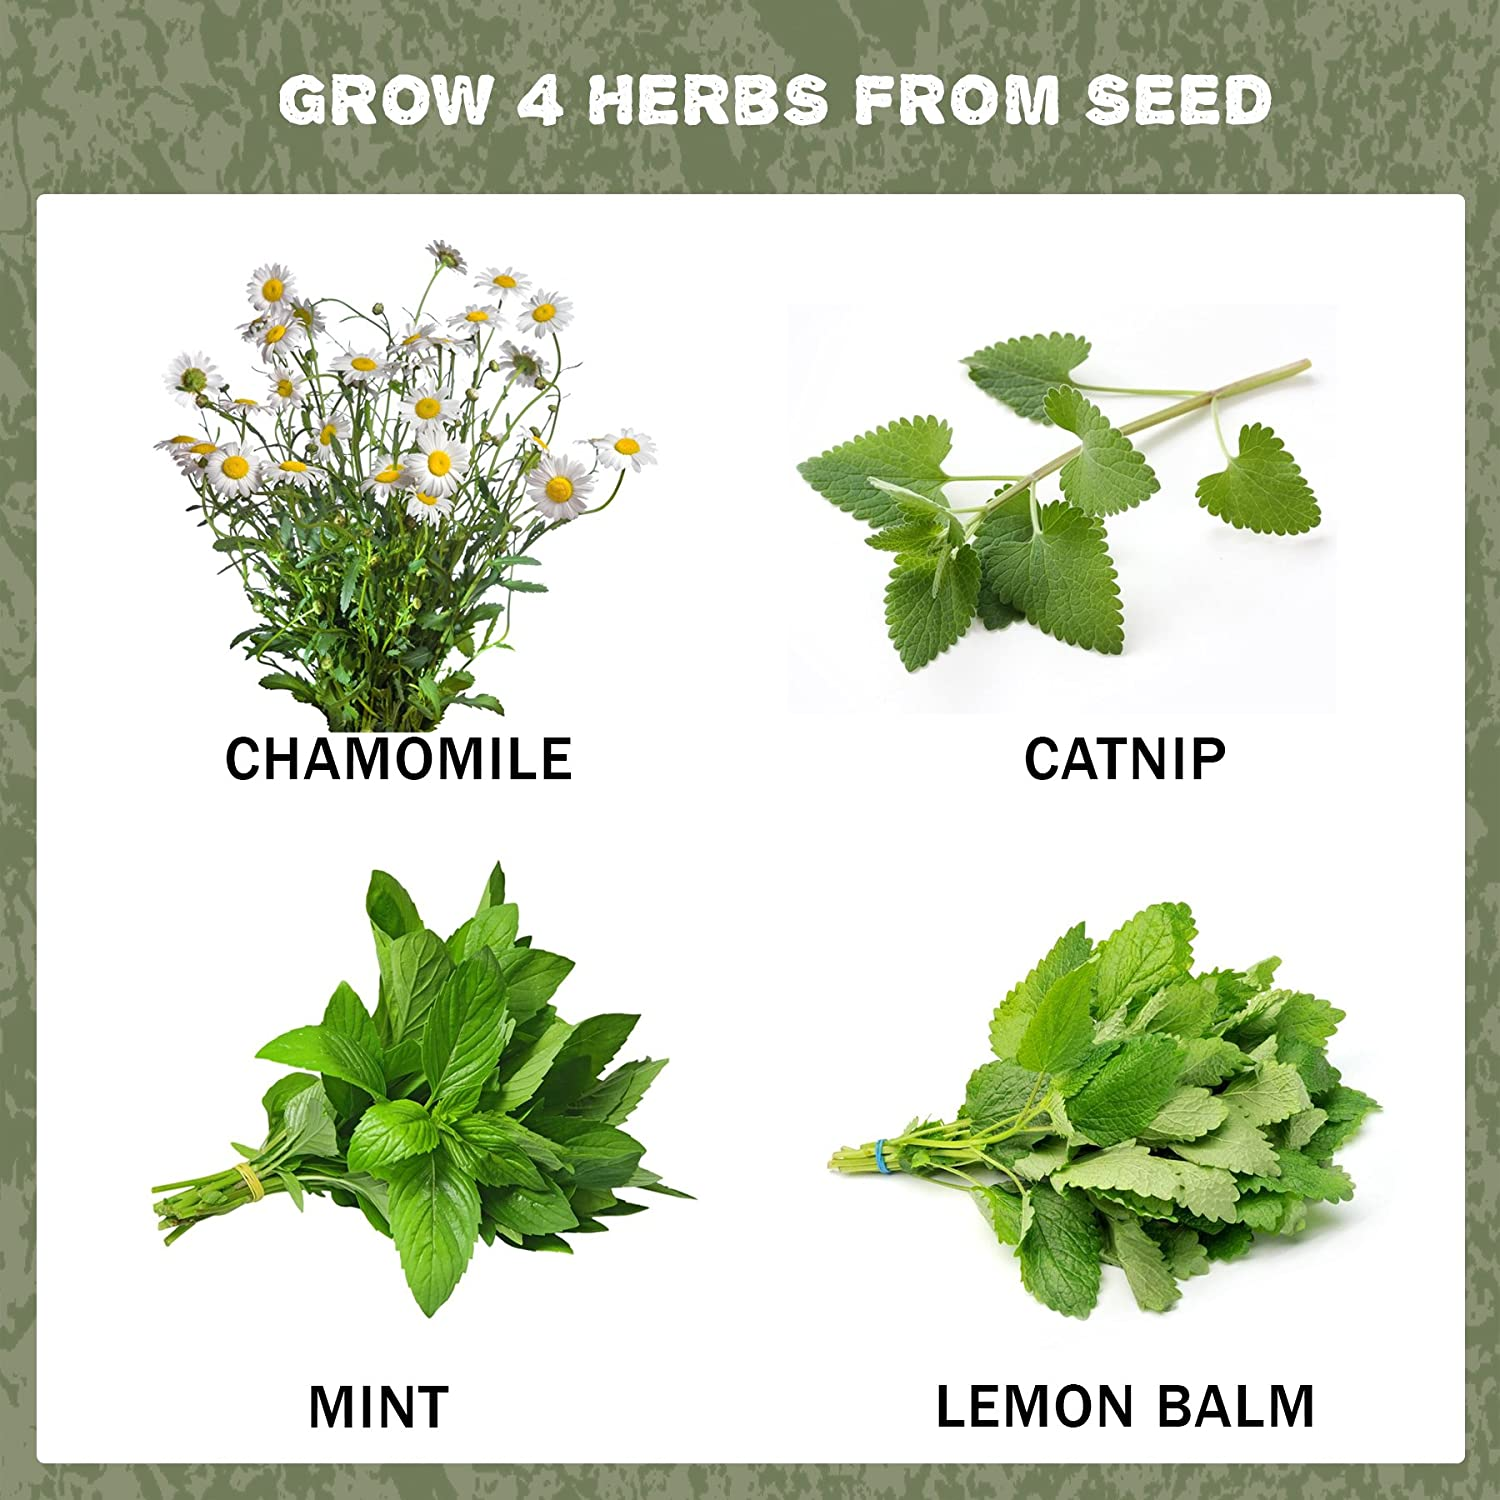 Seeds, seedlings, herbs: a selection of sites